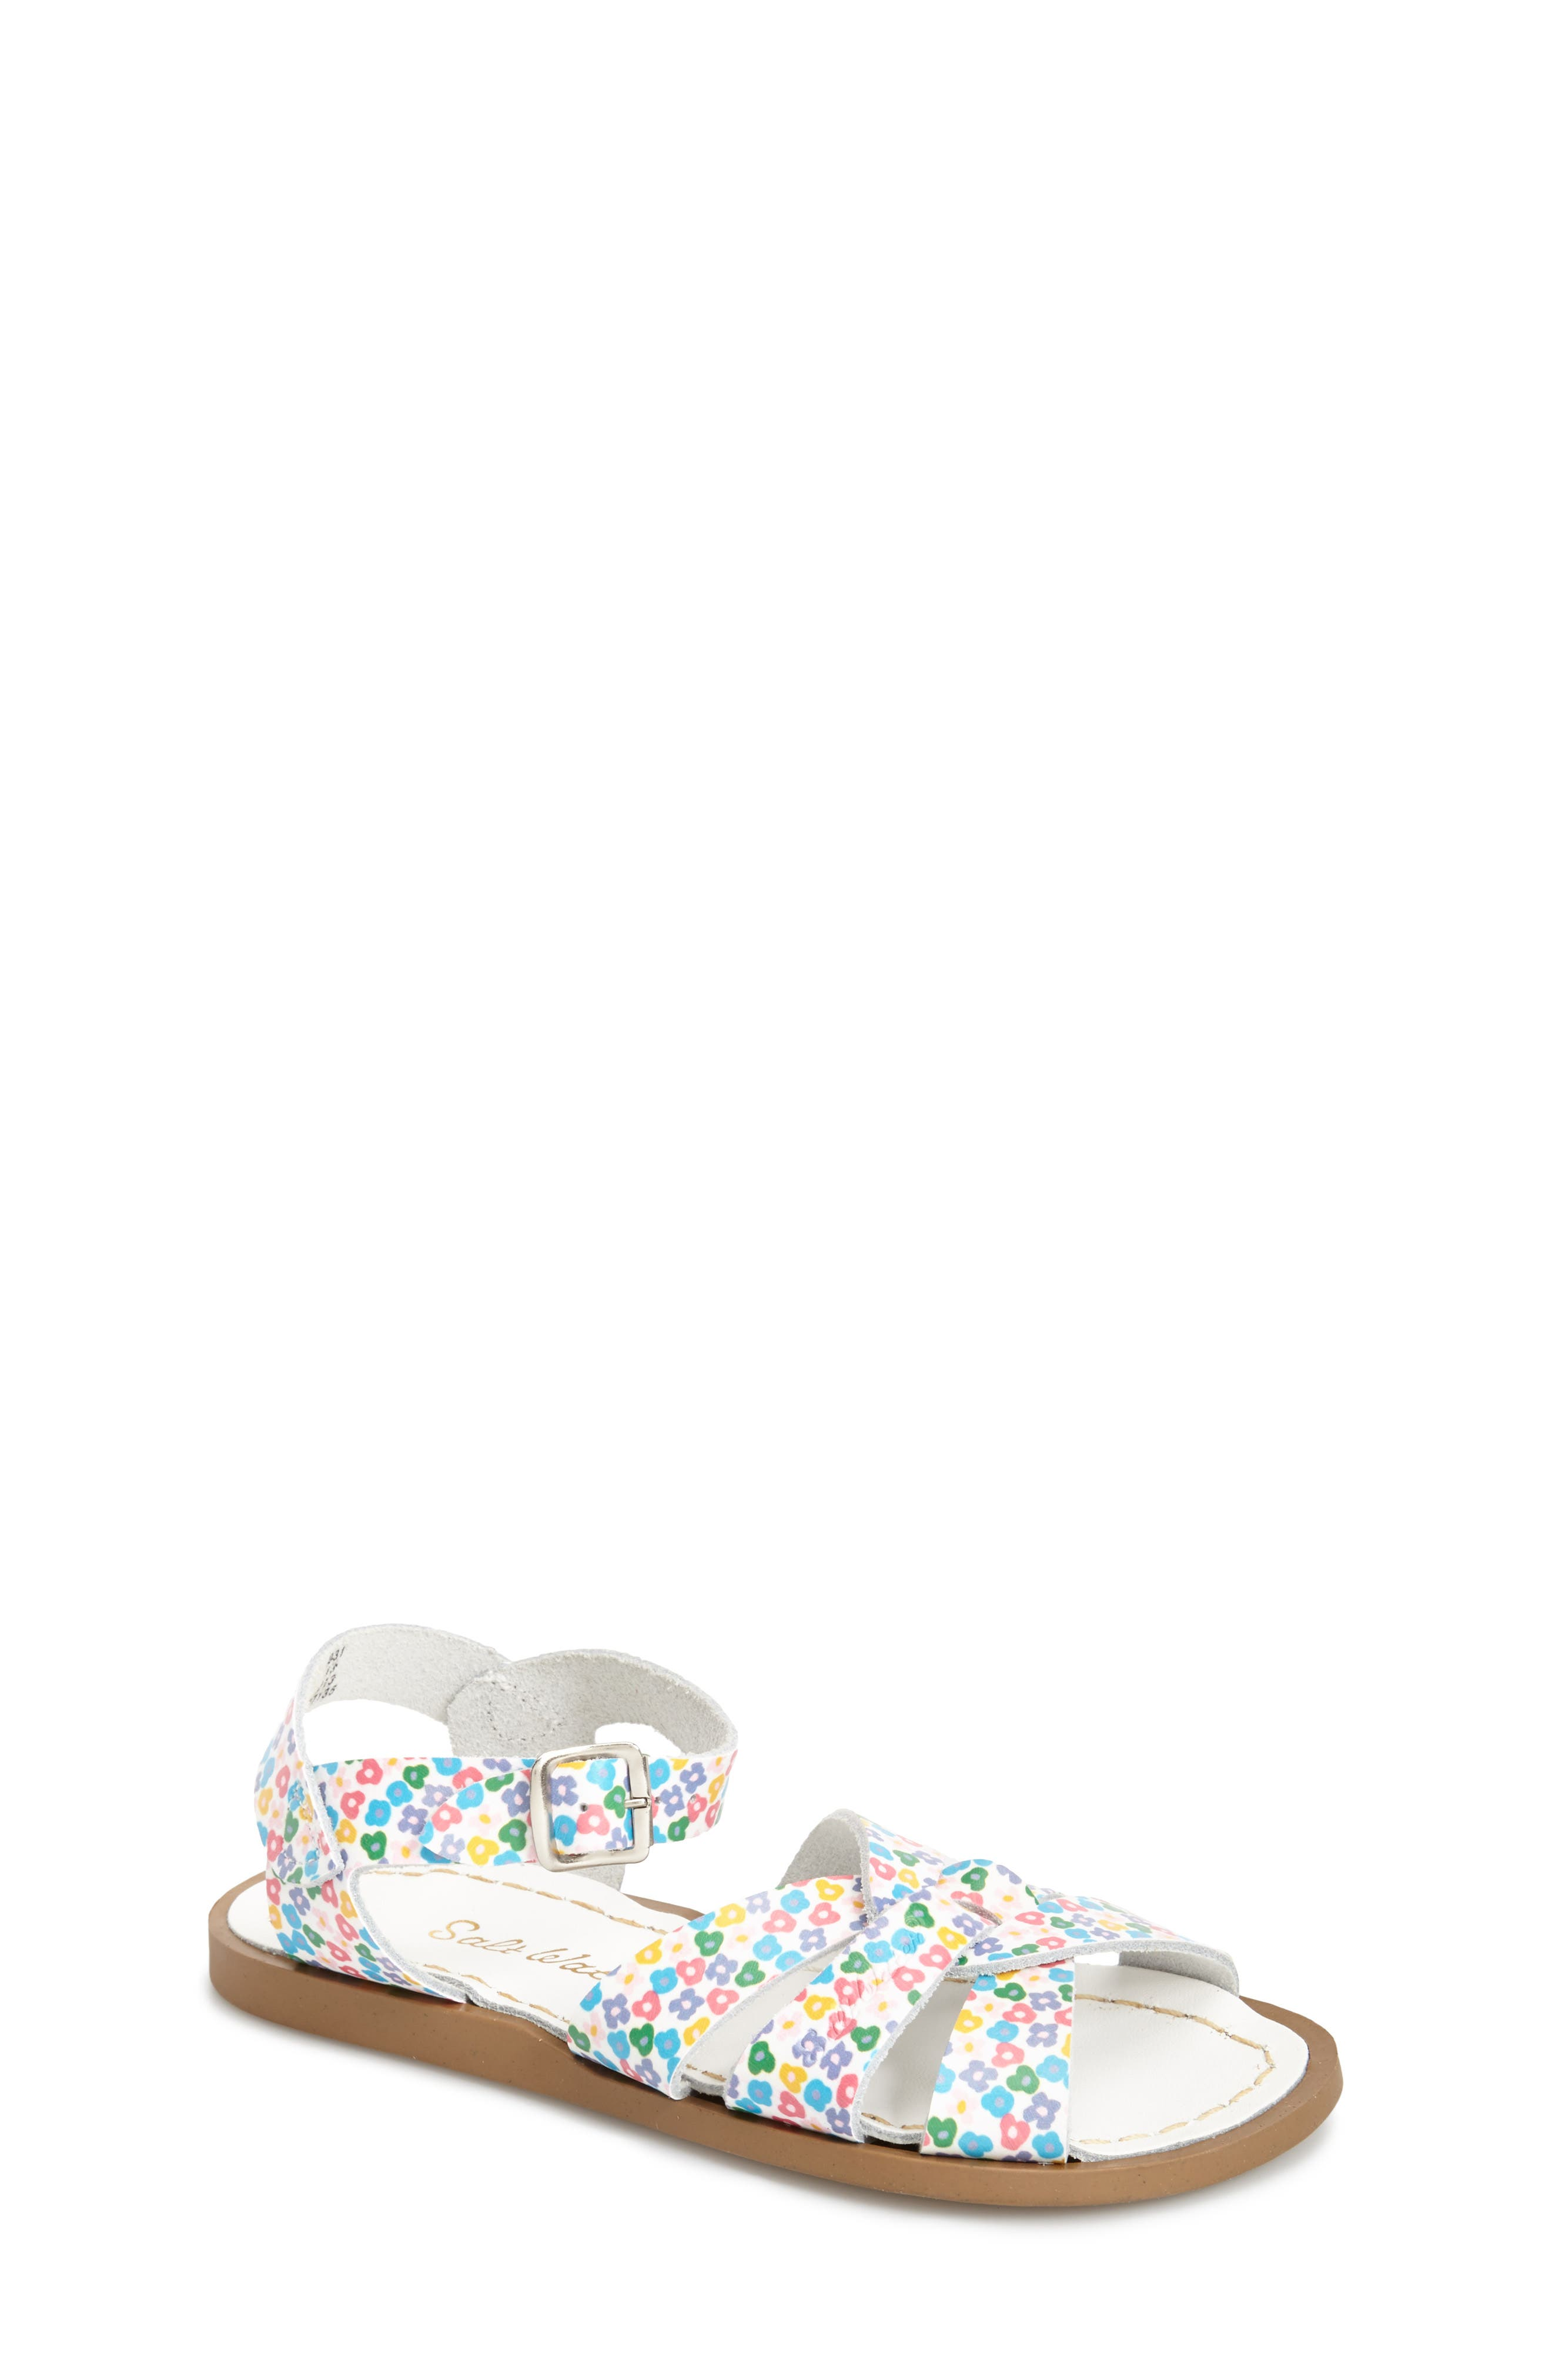 f4392d382c82e Kids' Salt Water Sandals By Hoy Shoes | Nordstrom